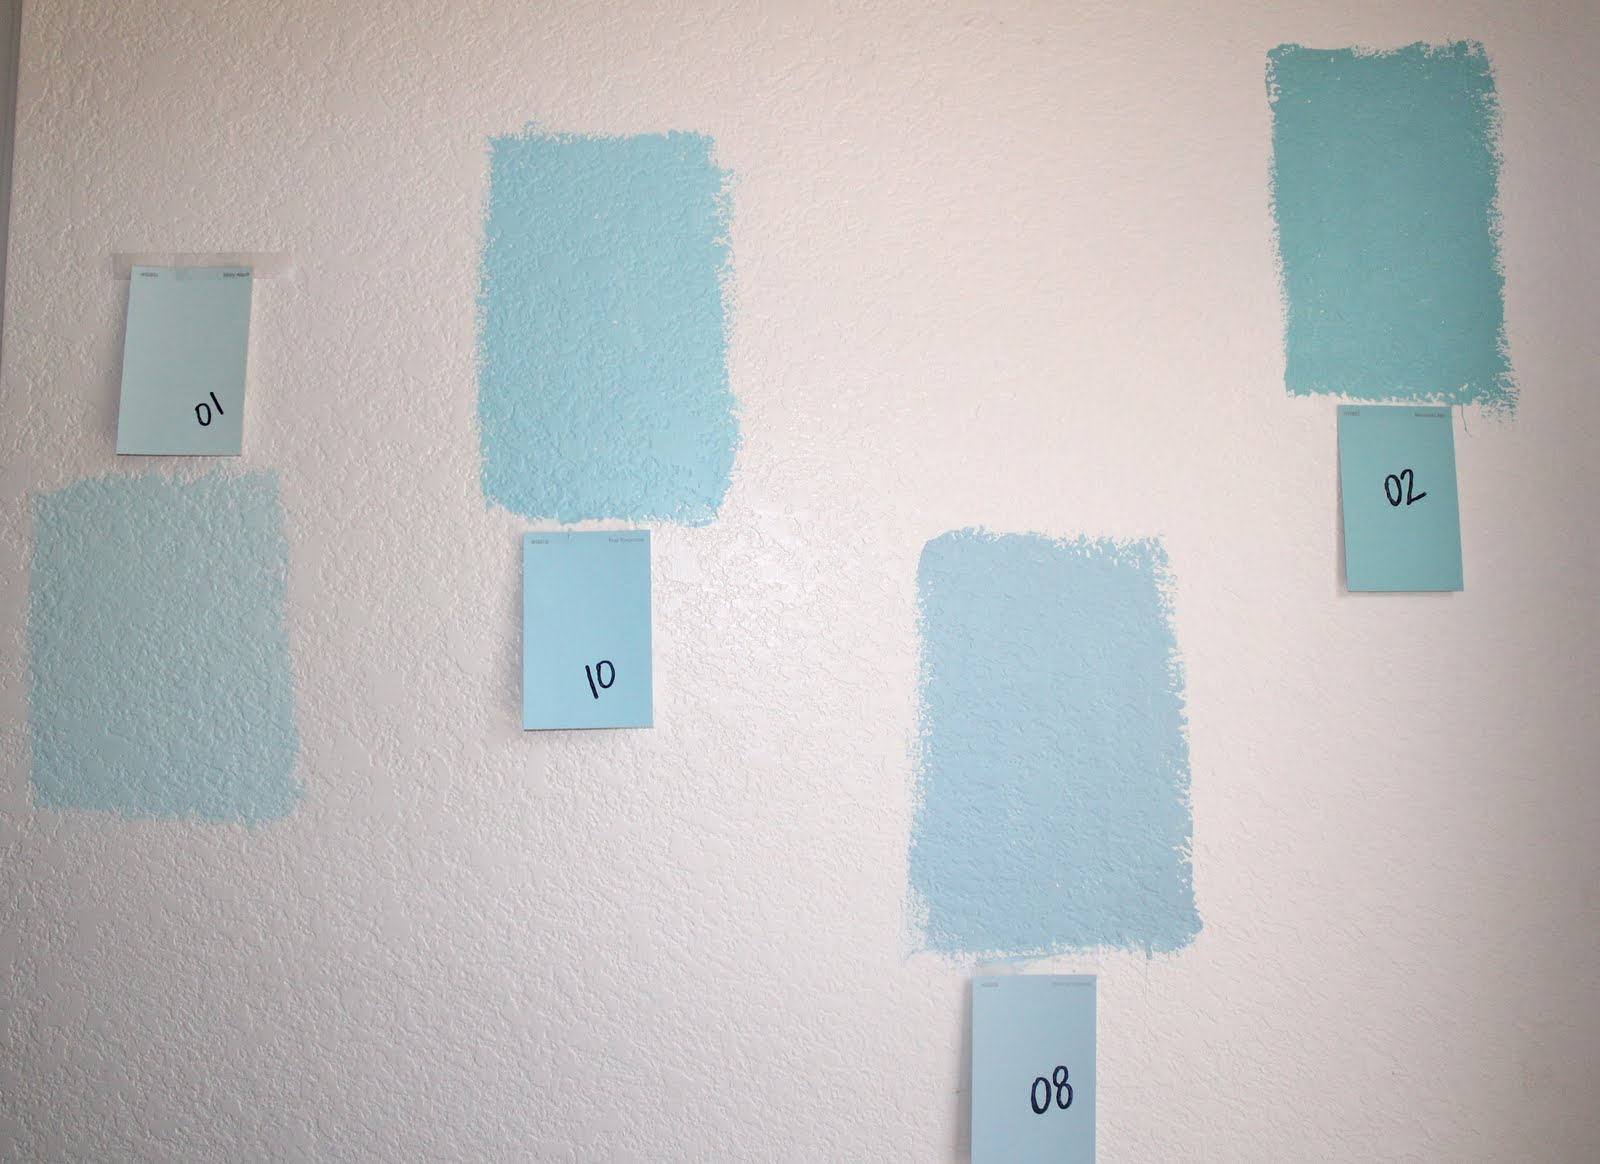 I Have A Really Hard Time Making Paint Decisions. Eek! We Keep Going Back  And Forth Between A Couple Of The Colors. Decisionsu2026decisions!